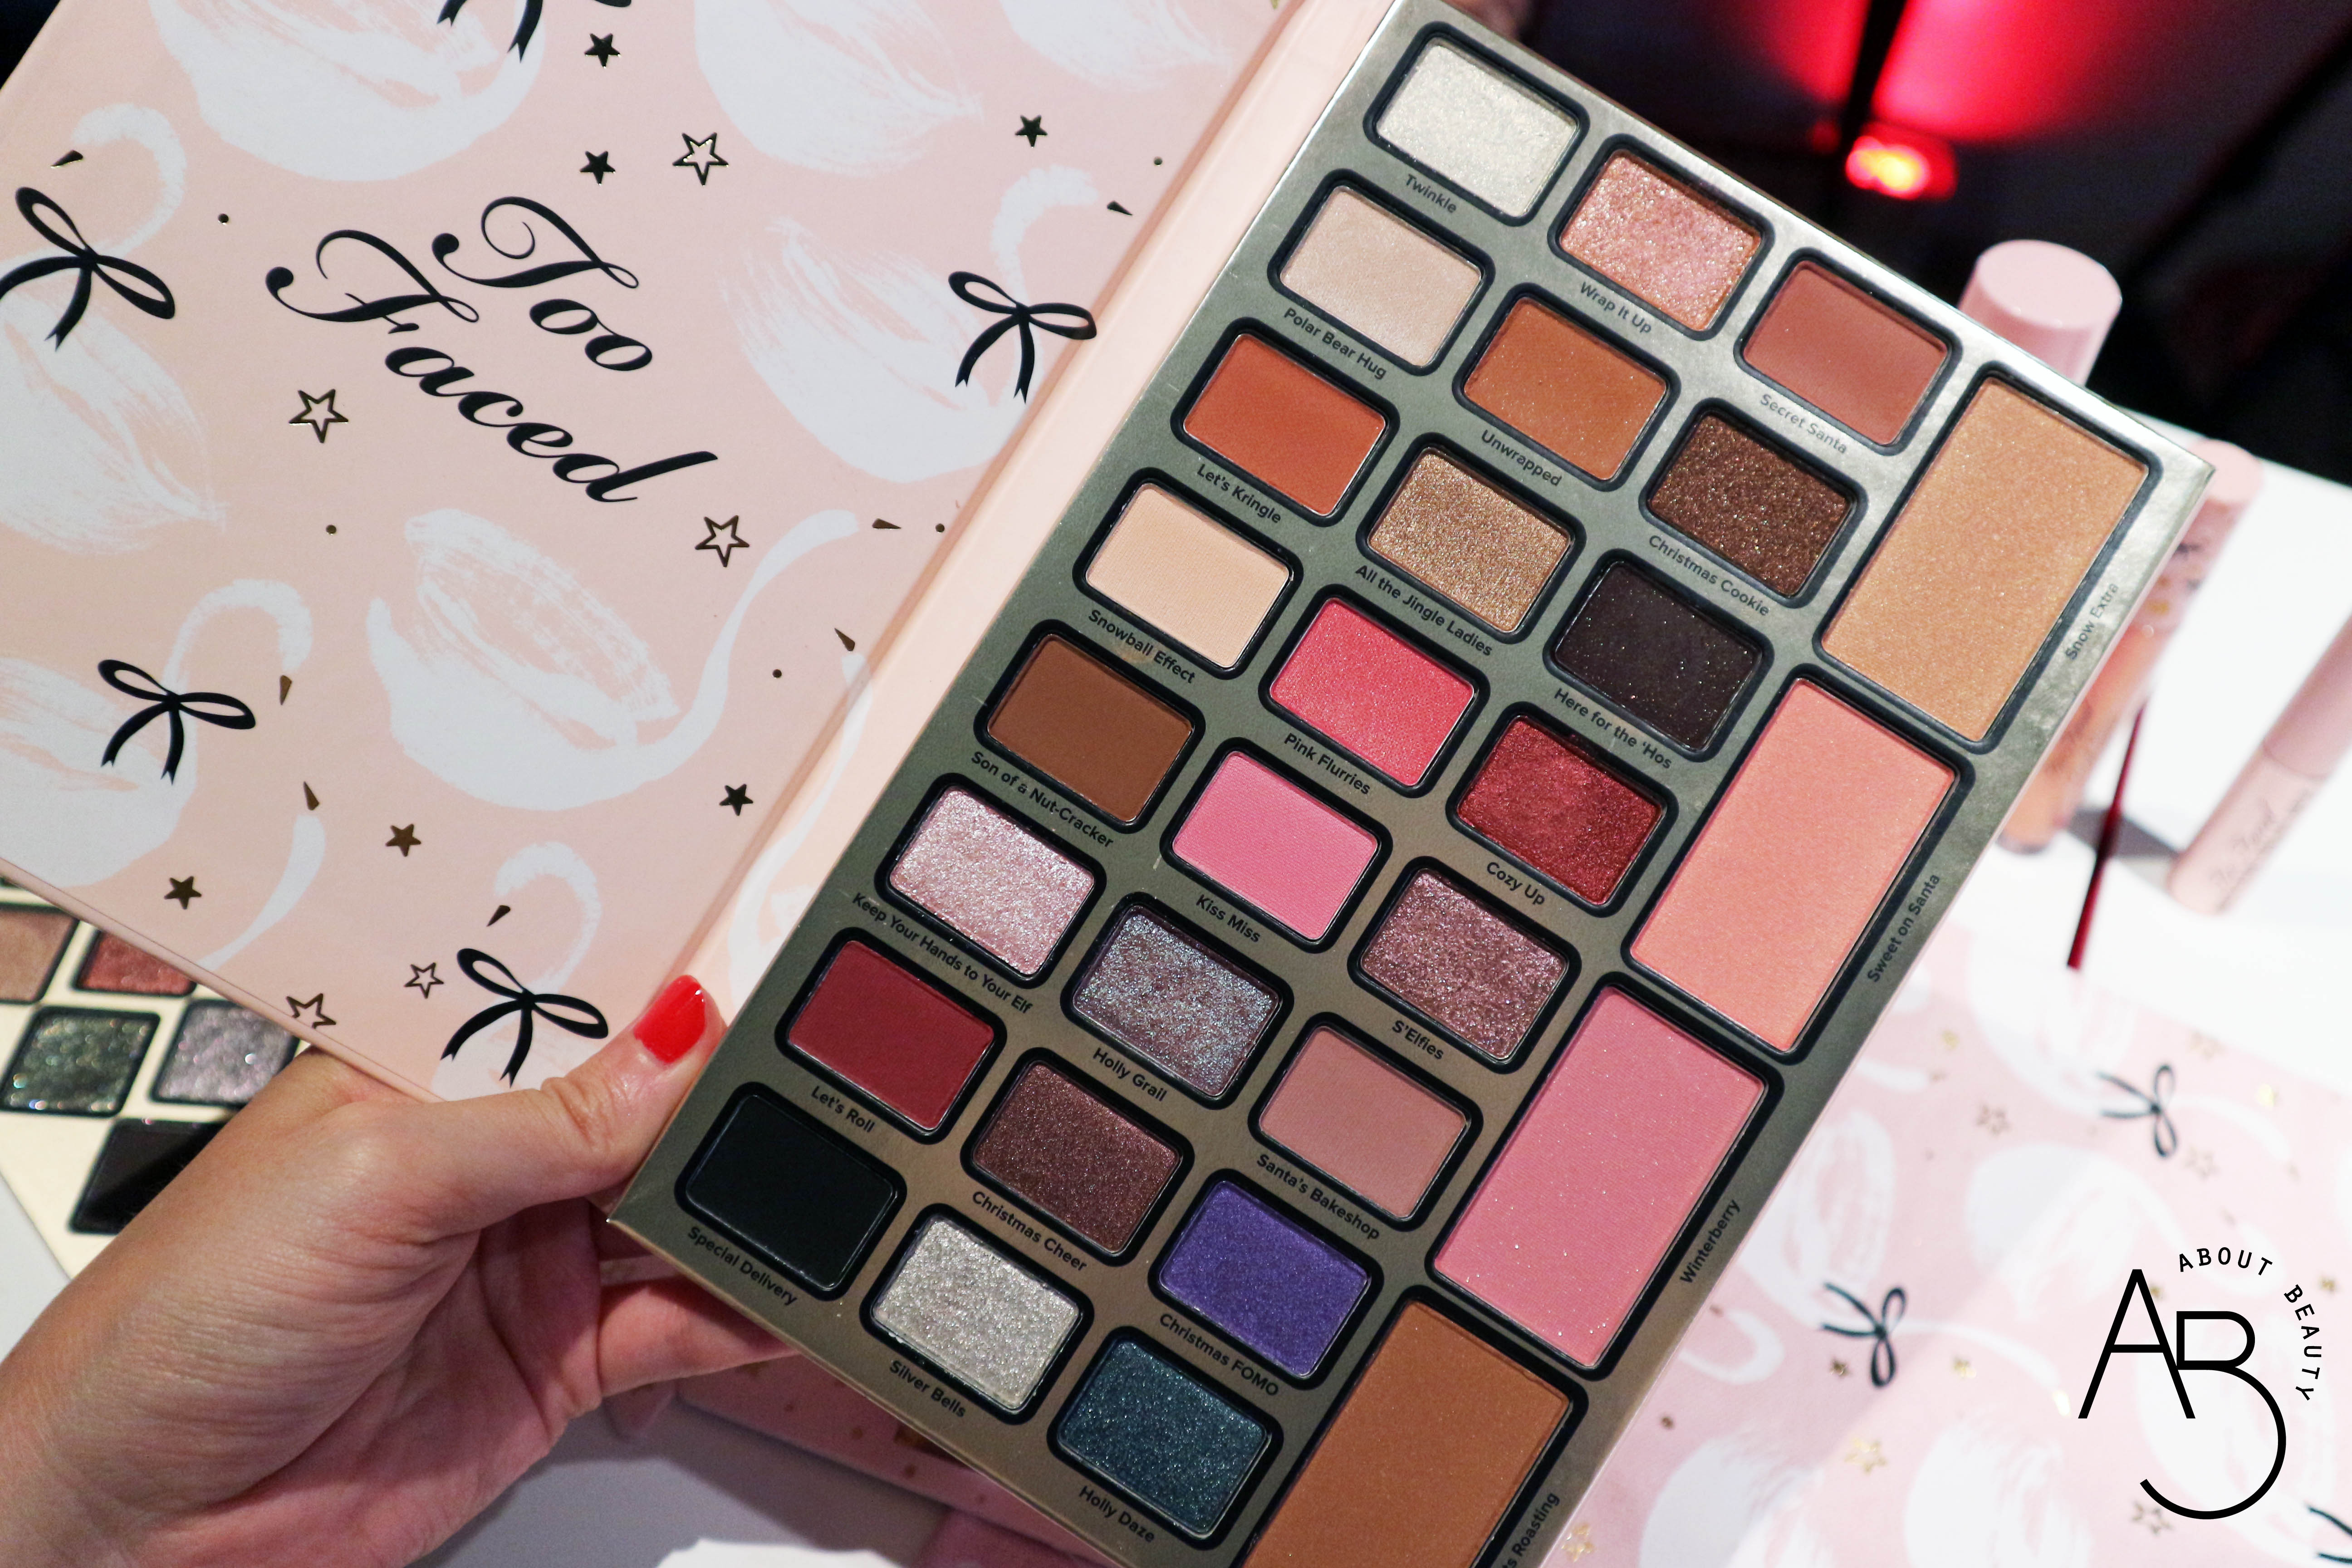 Sephora Natale 2018 Novita da non perdere - Make-up - Too Faced Cofanetti Palette Christmas Dreams Dream Queen - Review, recensione, swatch, info, prezzo, dove acquistare, data di uscita